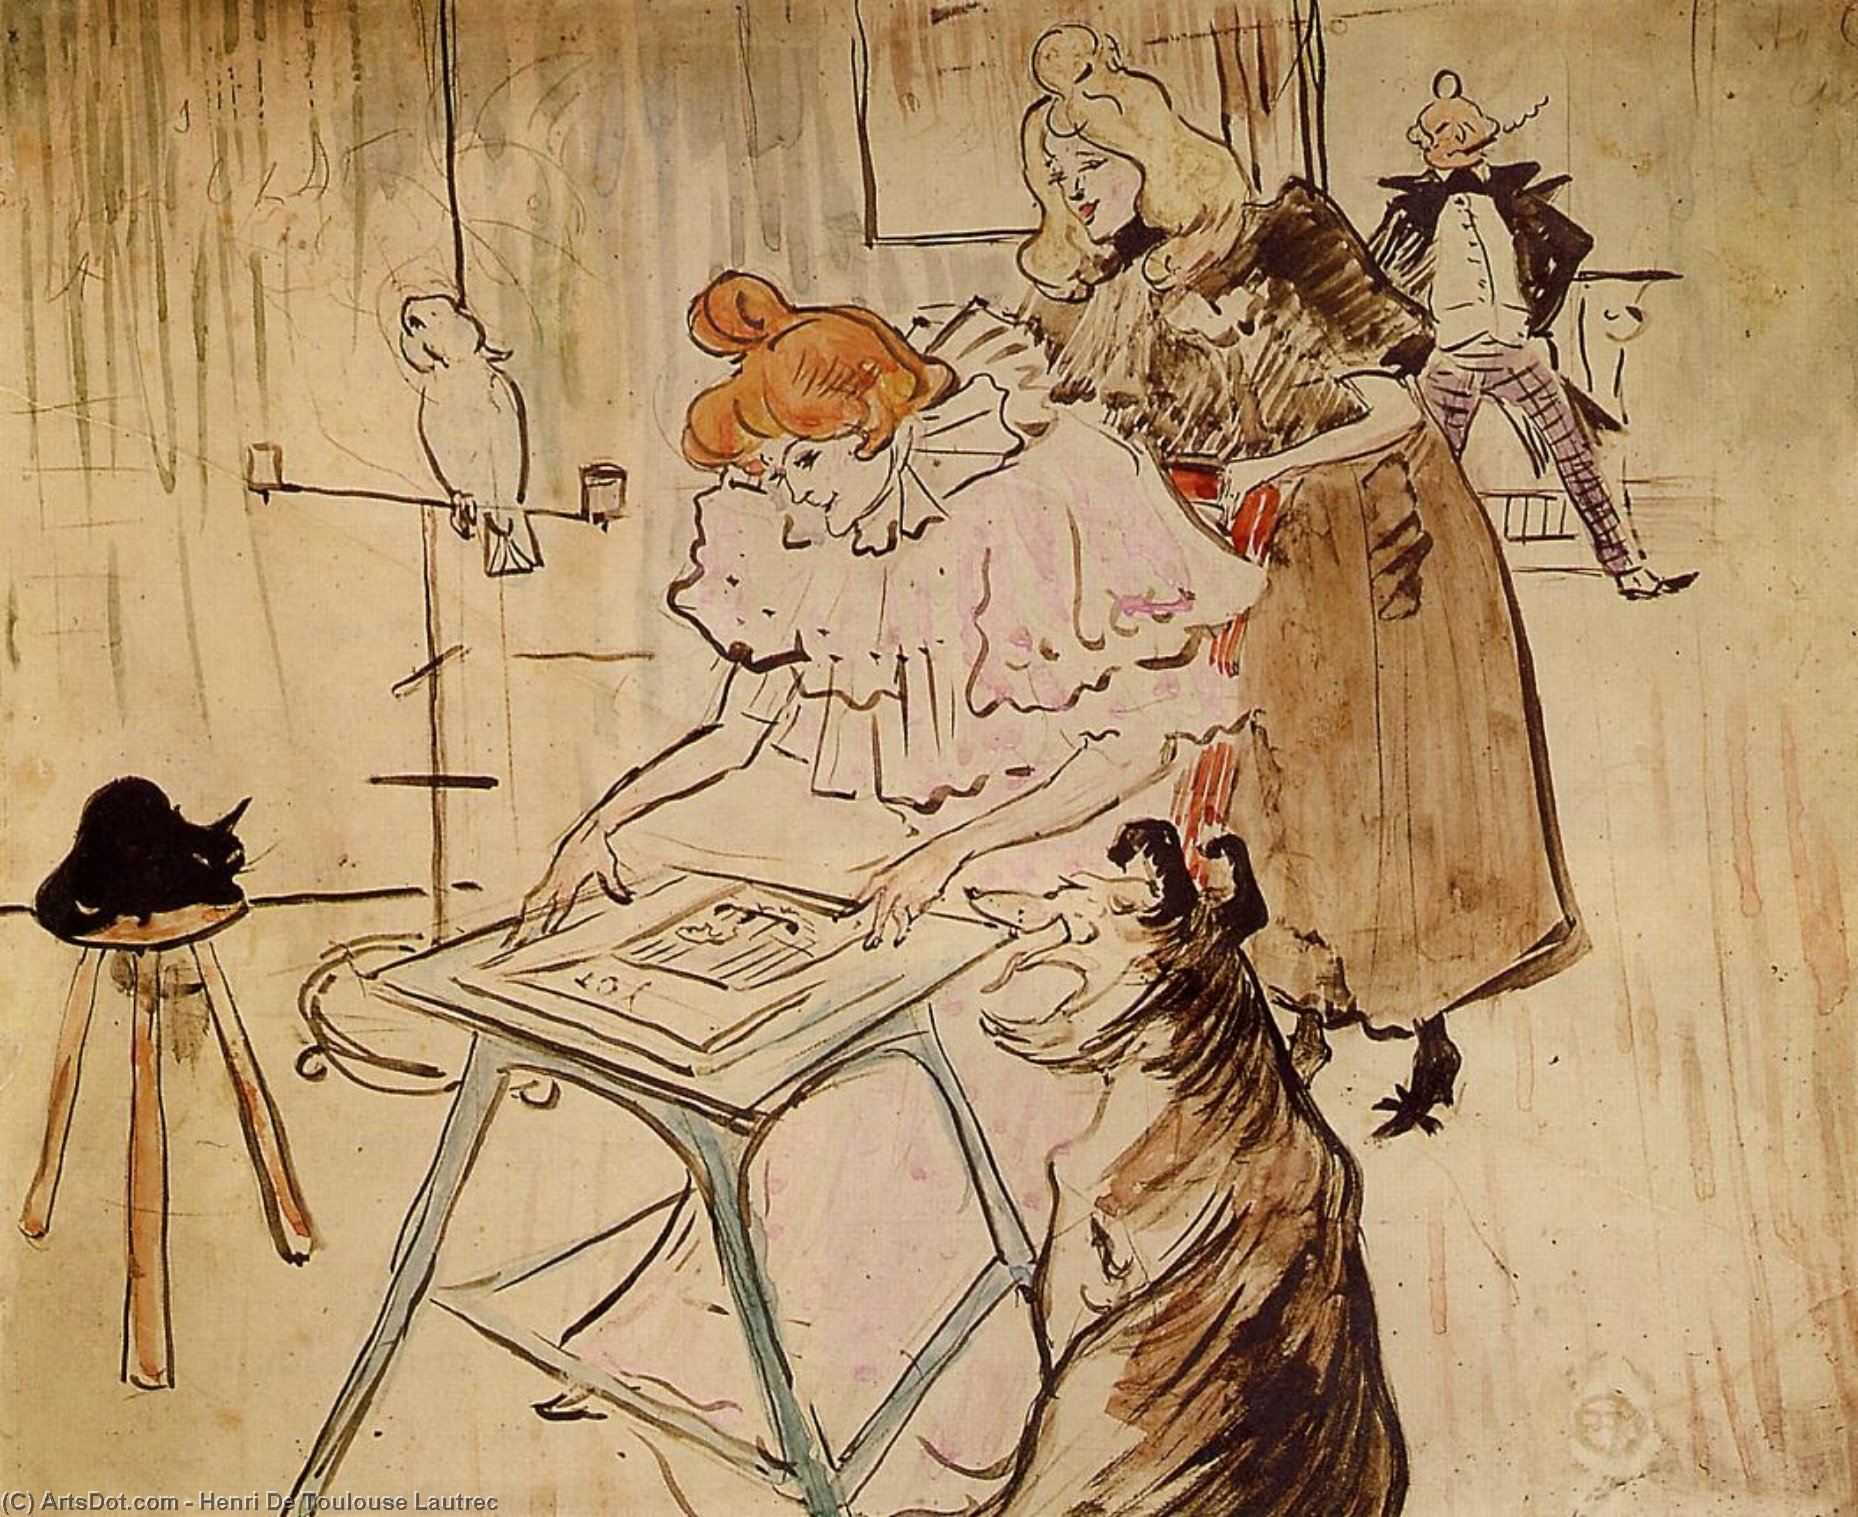 The Motograph 1, Oil by Henri De Toulouse Lautrec (1864-1901, France)